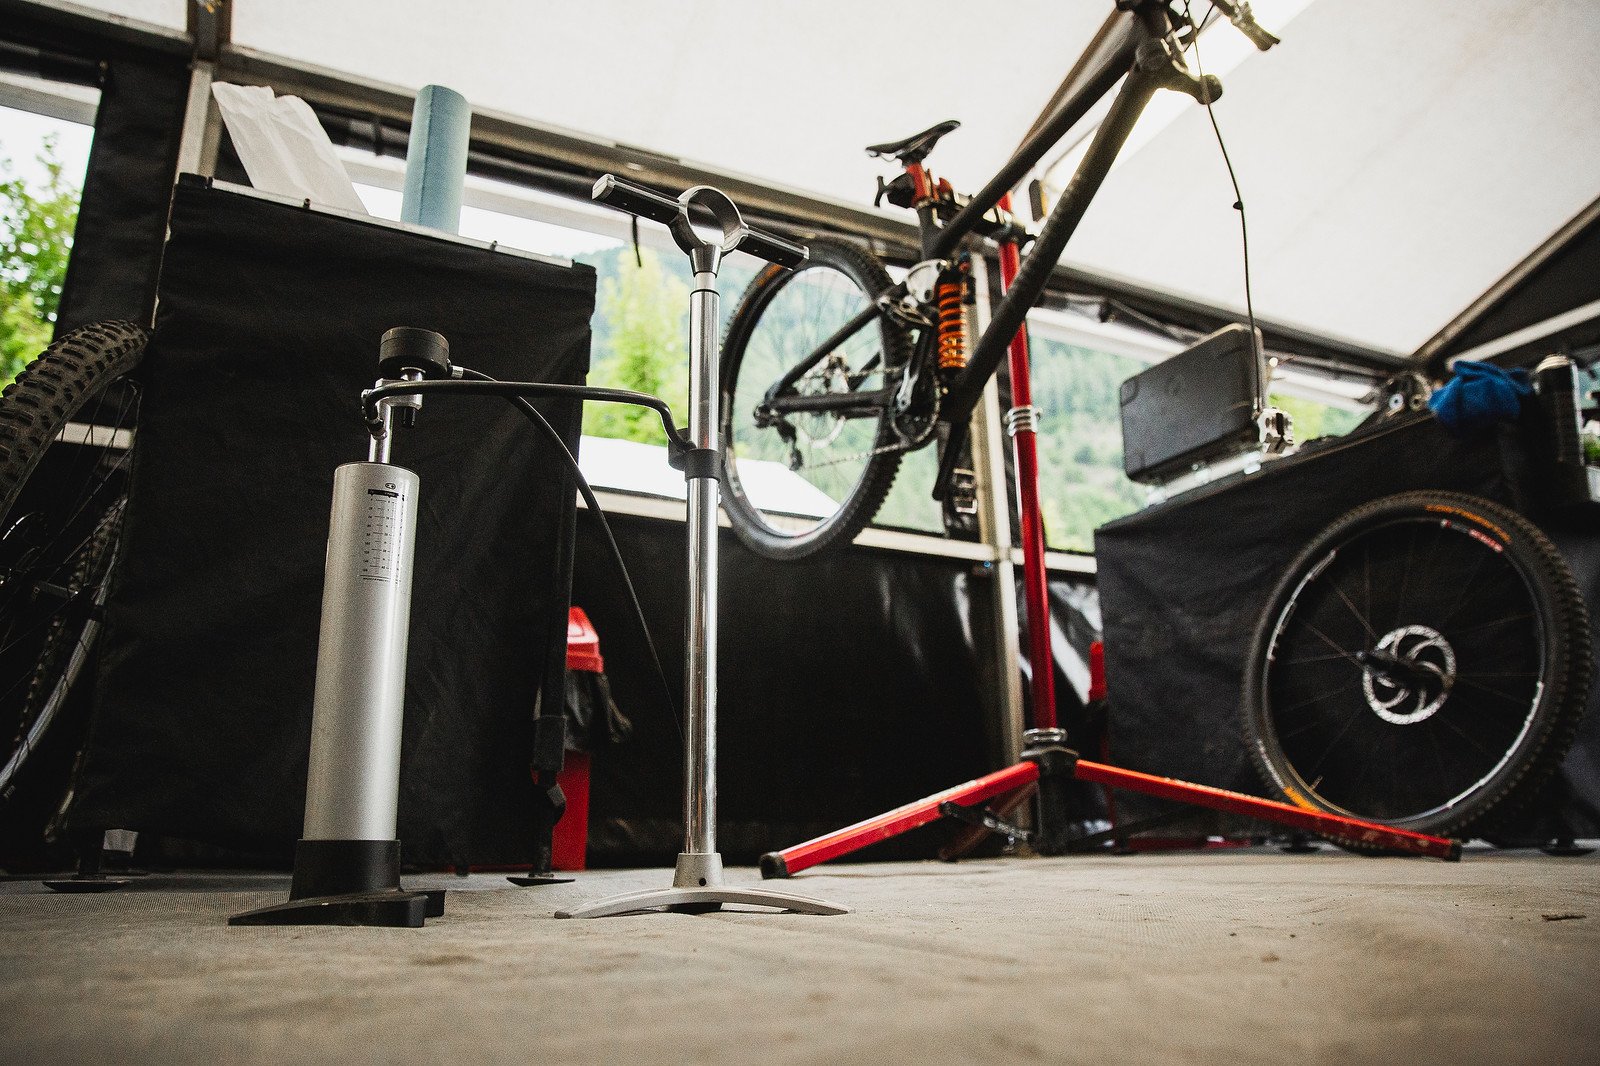 Crank Bros Klic Floor Pump at Athertons - PIT BITS - 2019 Val di Sole World Cup Downhill Bike Tech - Mountain Biking Pictures - Vital MTB